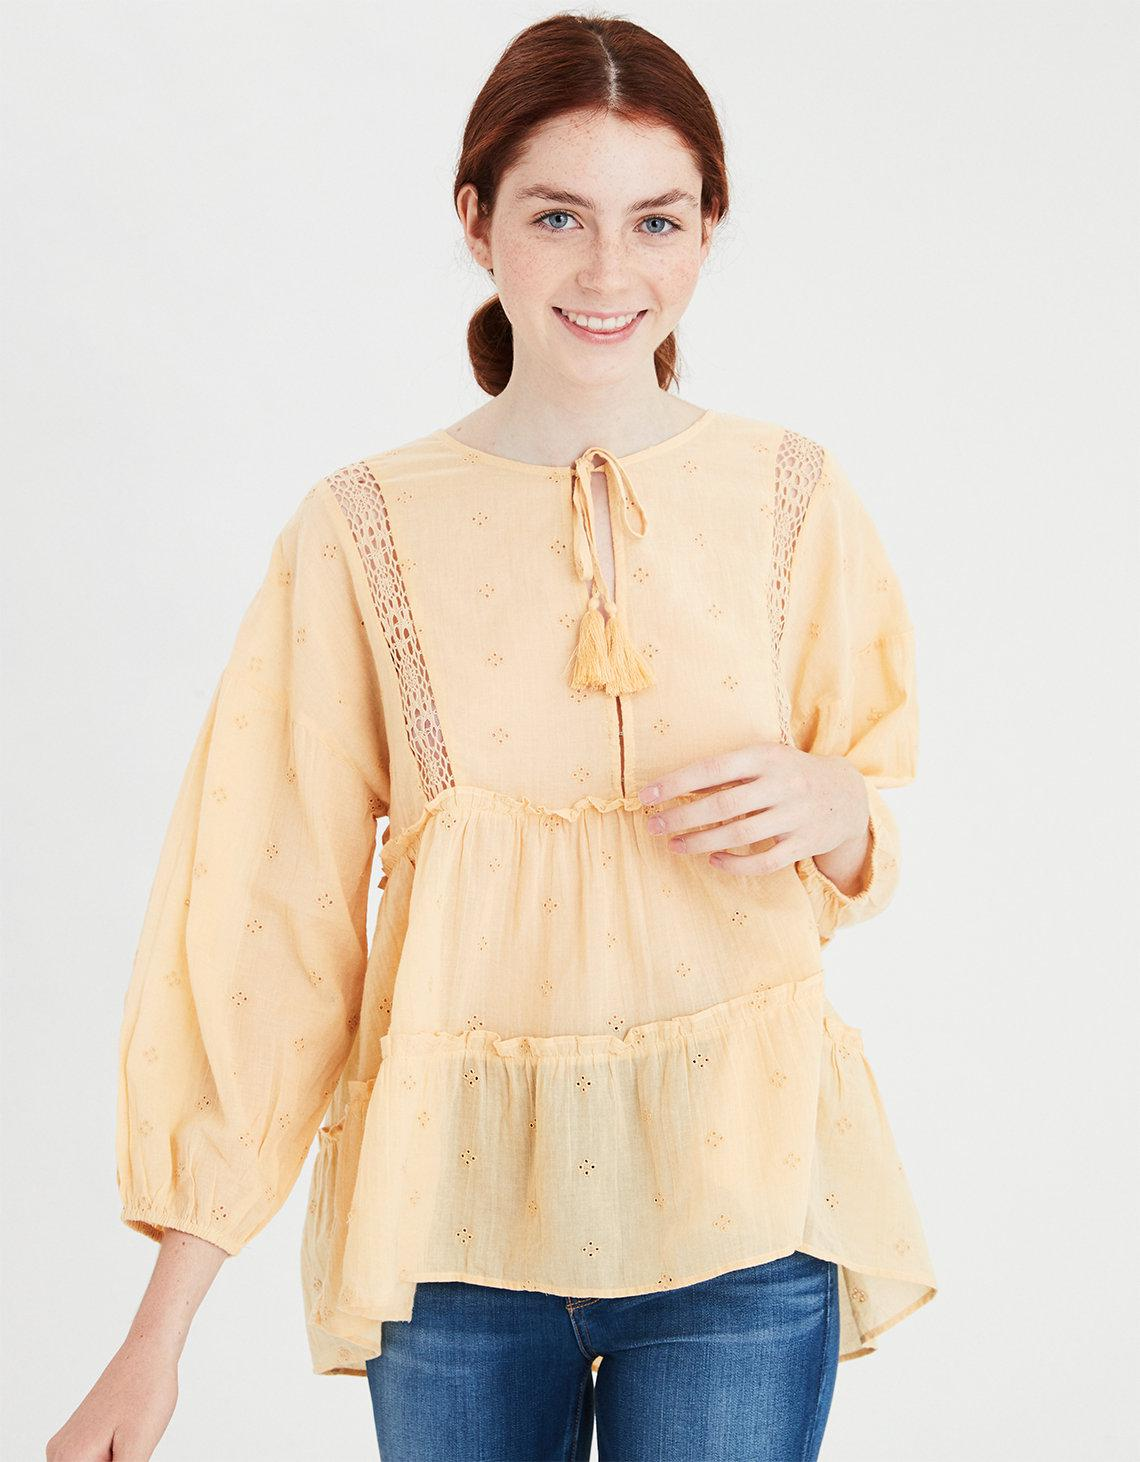 647e39be2b18a6 Lyst - American Eagle Ae Allover Eyelet Tiered Top in Yellow